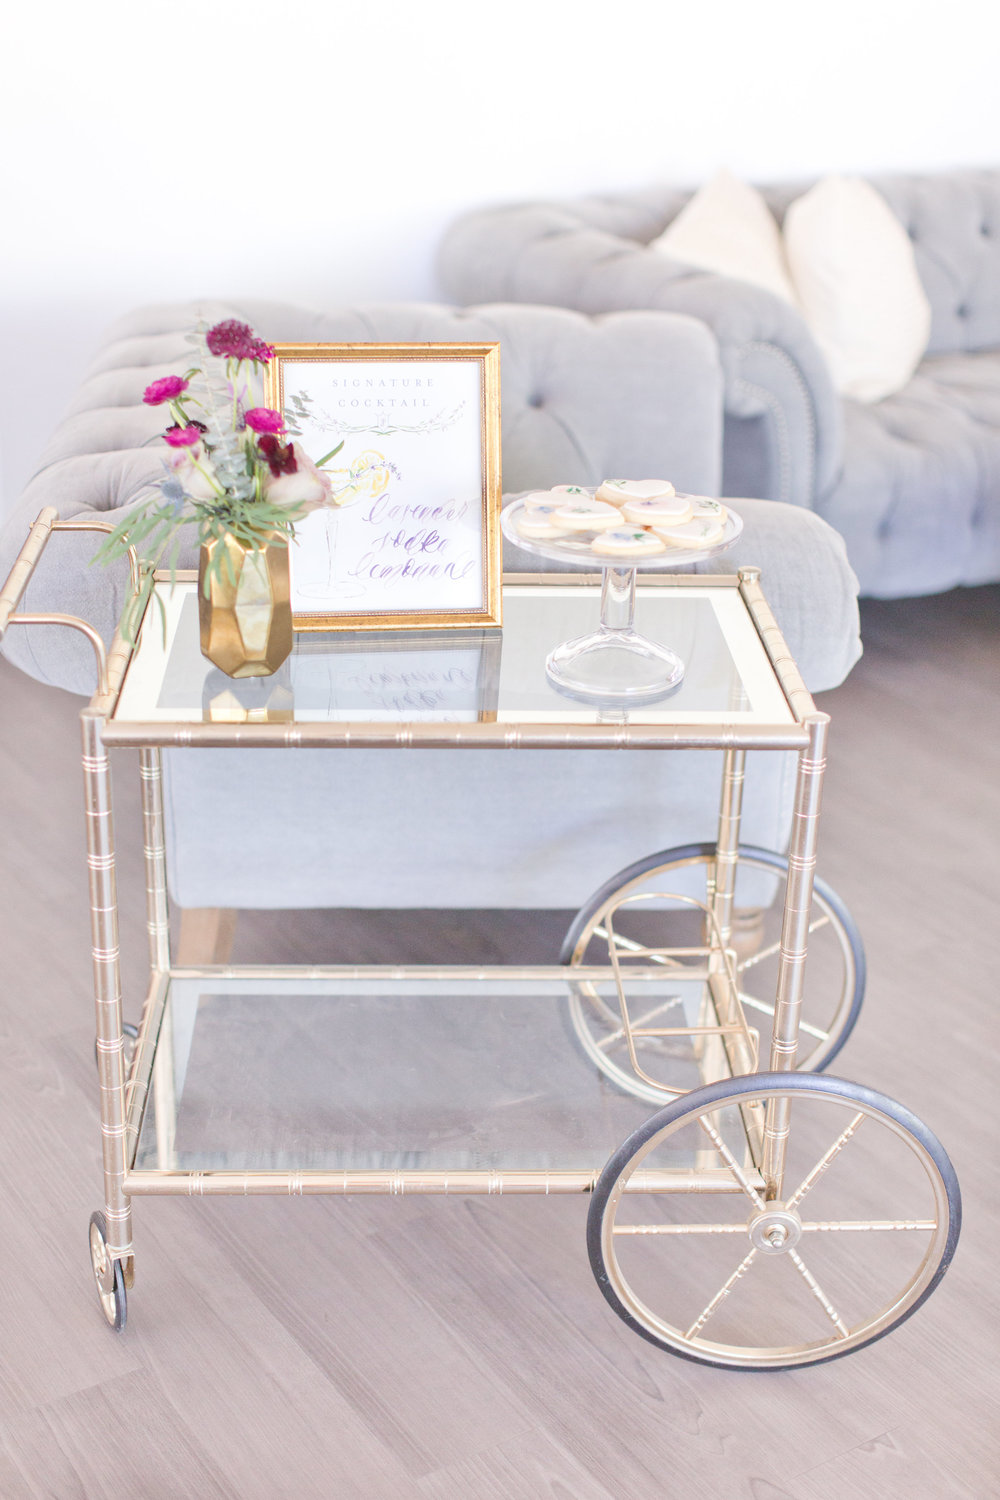 Amy & Jordan Workshop - Purple Anthropologie Inspired Wedding Lucite Bar Cart